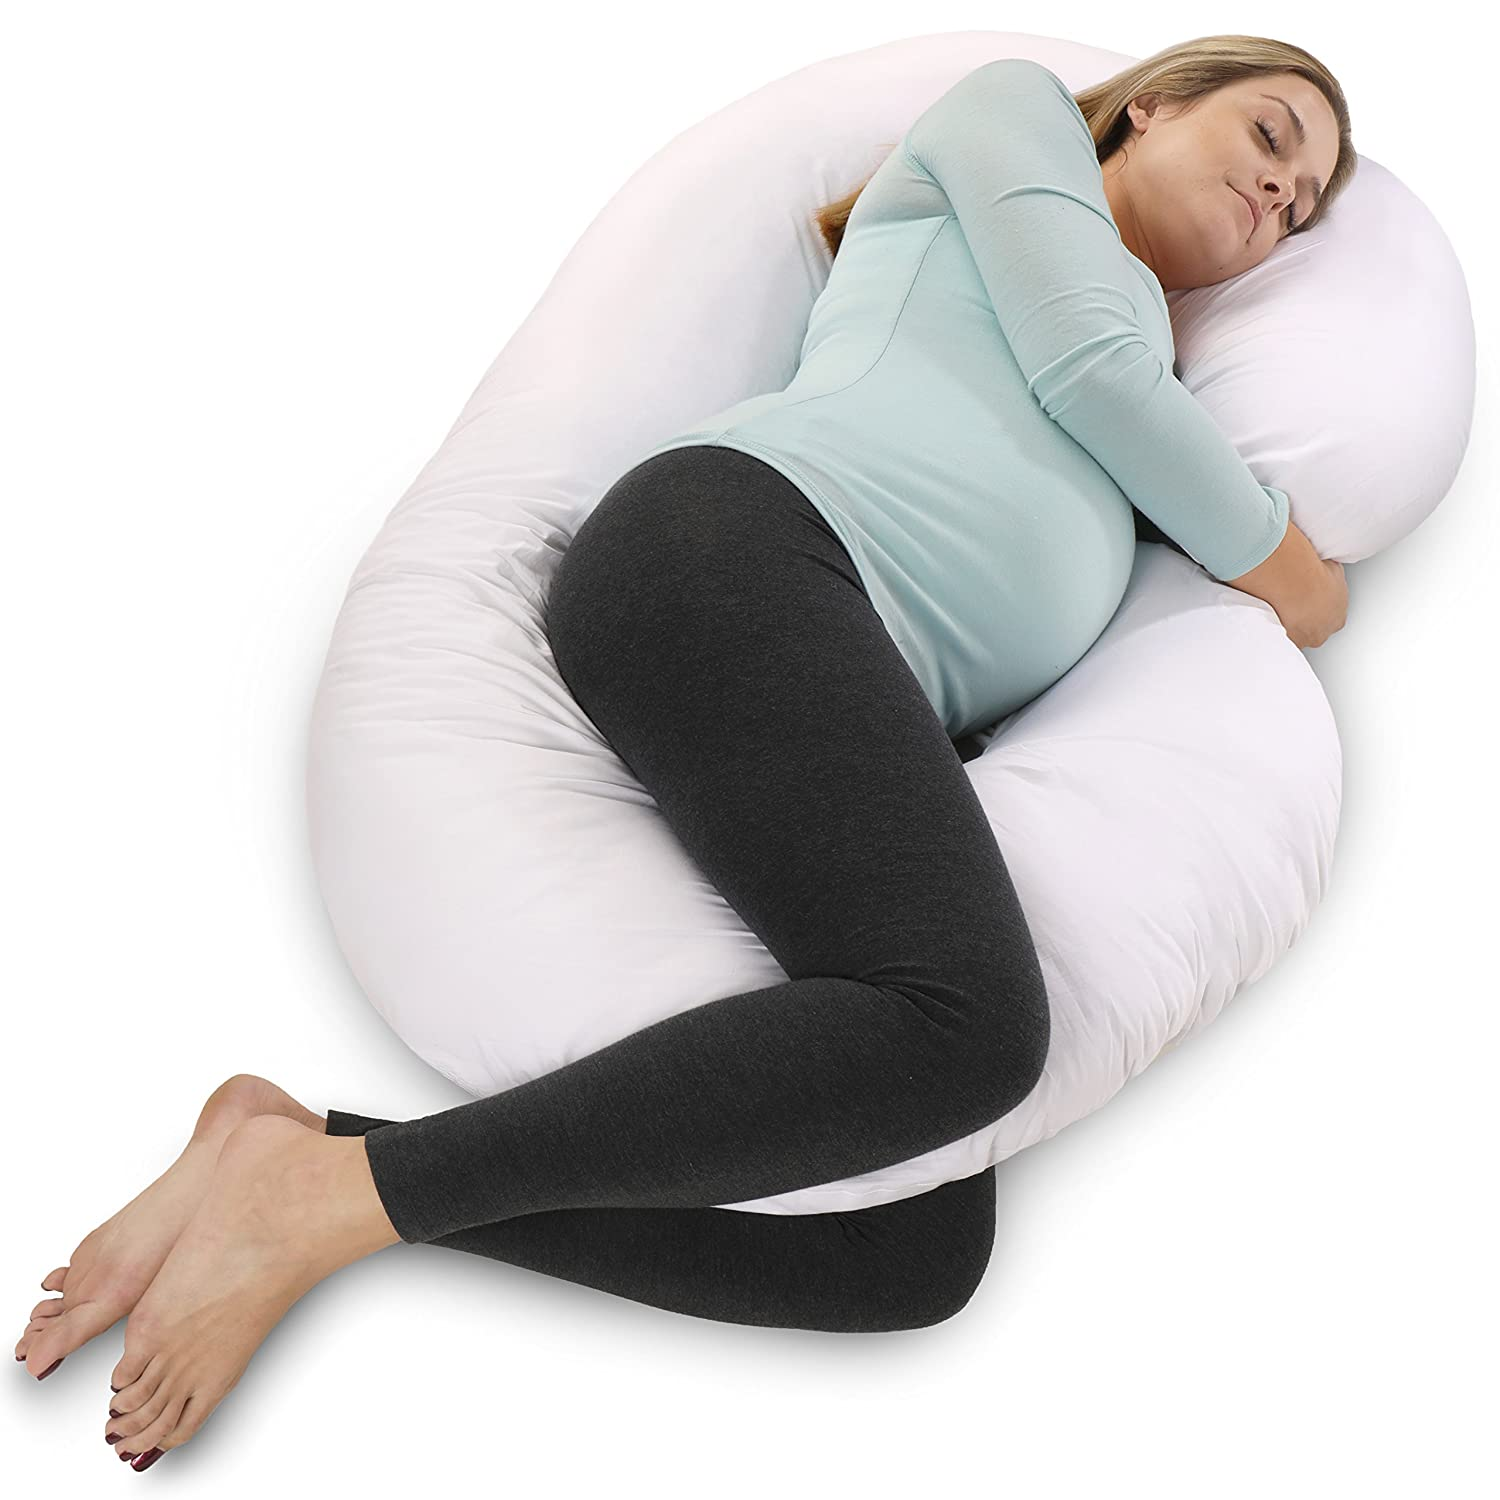 PharMeDoc Total Body Pillow - The World's MOST Comfortable Maternity/Pregnancy Pillow - Snug Cushion With Zipper – Full Contoured Body Support System, Side Sleeper Pillow, Nursing & Snuggle Pillow PMD_MBP_60_24_7_WHT